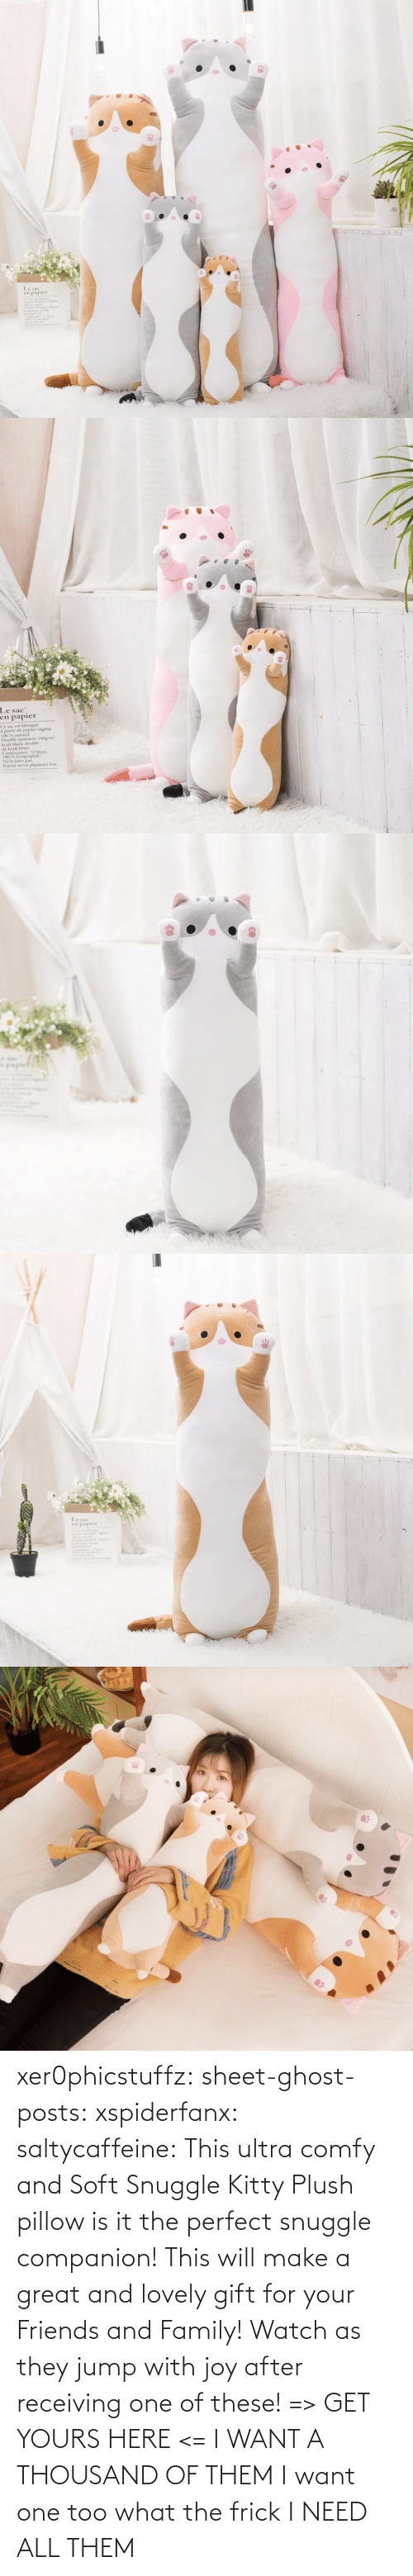 Is It: xer0phicstuffz:  sheet-ghost-posts: xspiderfanx:  saltycaffeine:  This ultra comfy and Soft Snuggle Kitty Plush pillow is it the perfect snuggle companion! This will make a great and lovely gift for your Friends and Family! Watch as they jump with joy after receiving one of these! => GET YOURS HERE <=    I WANT A THOUSAND OF THEM  I want one too what the frick    I NEED ALL THEM